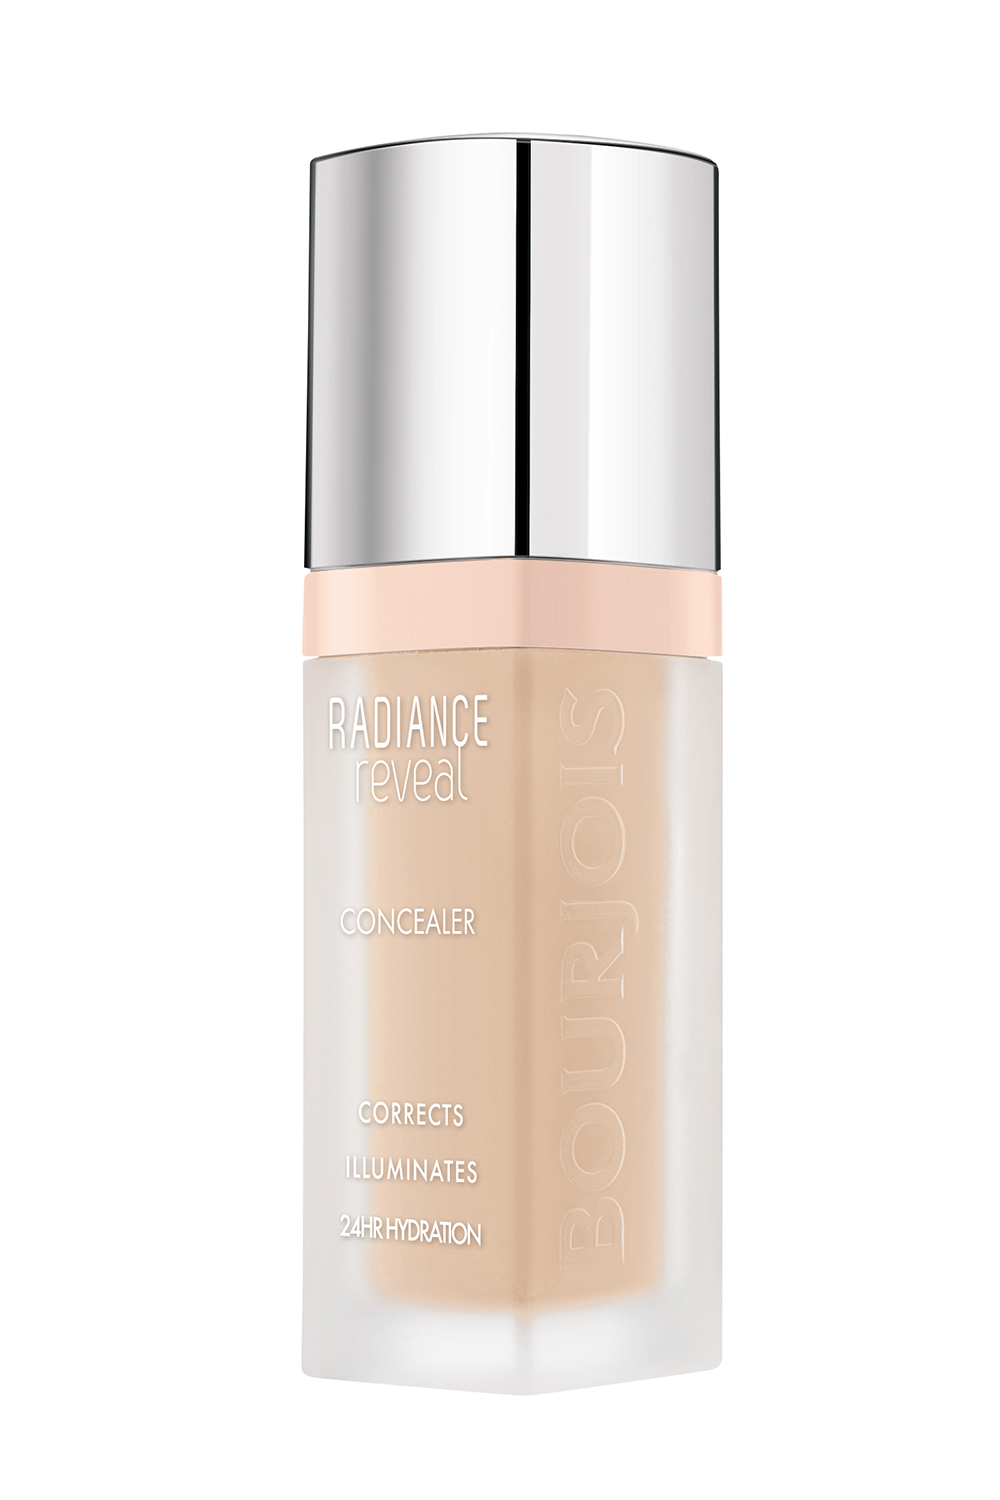 Best concealer to hide dark circles, blemishes and redness